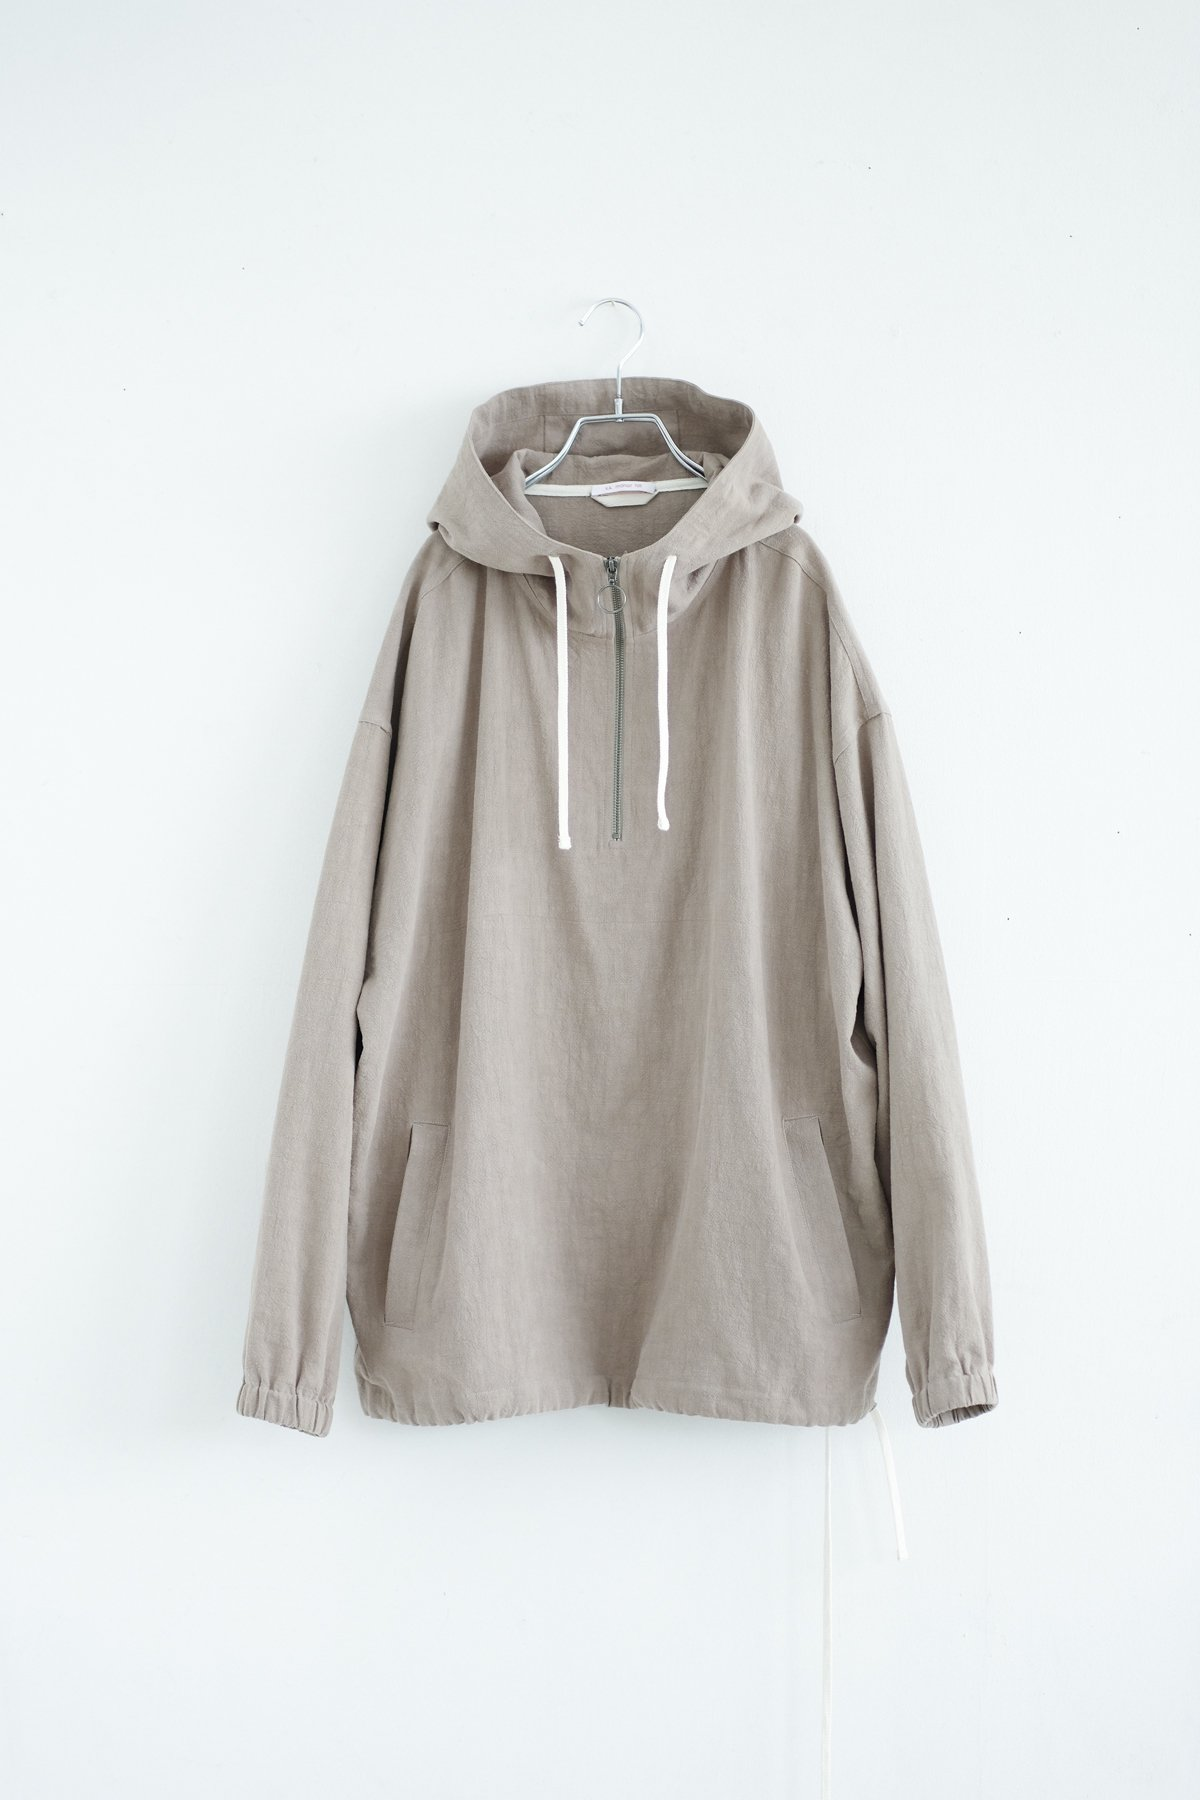 s.k. manor hill / POD PULLOVER JACKET(TAUPE)